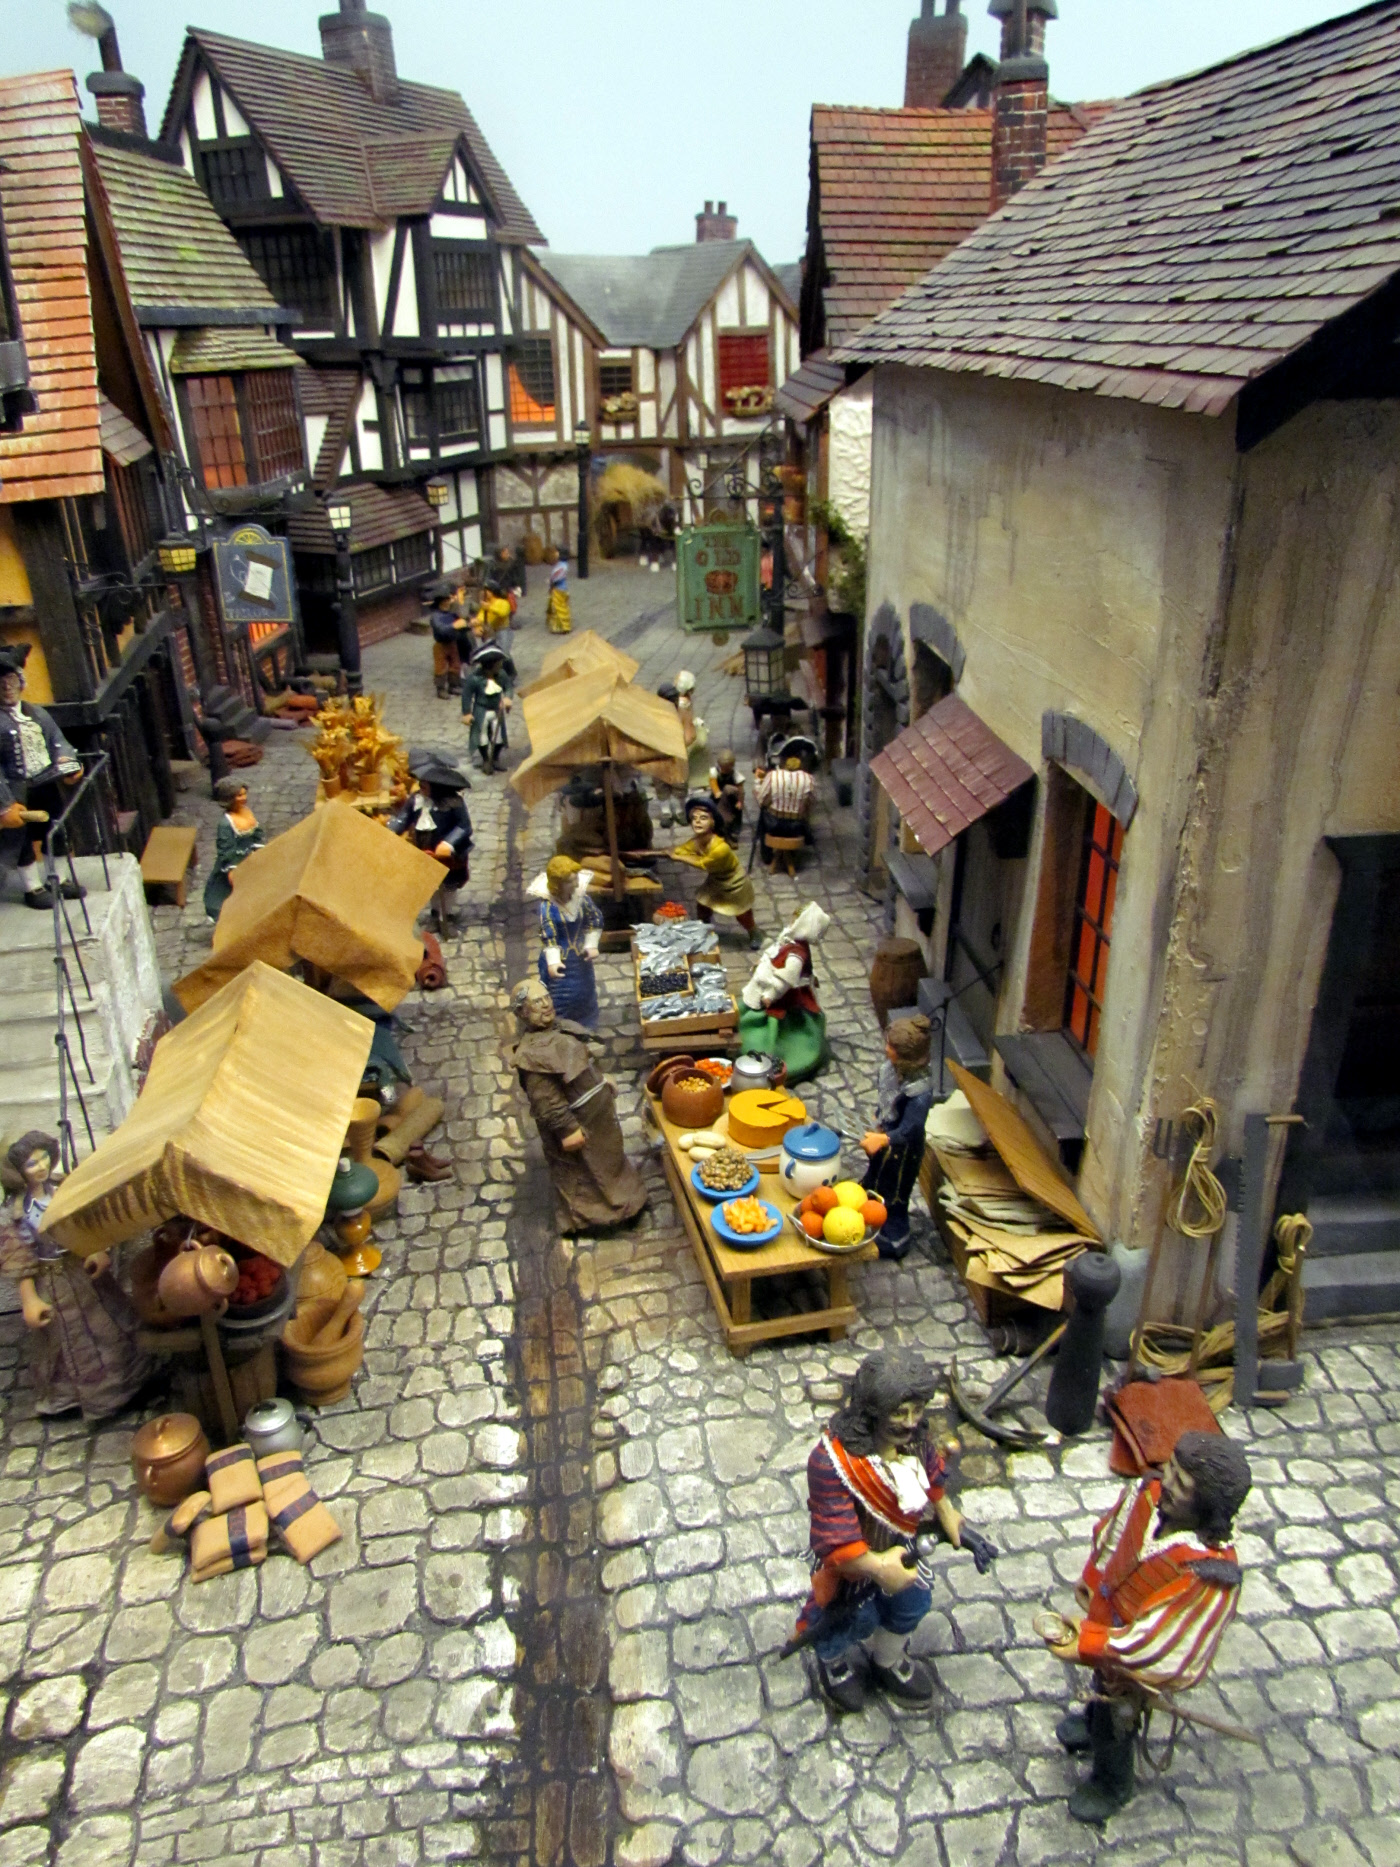 This Miniature World diorama reminded me of Ft. Louisburg in Nova Scotia. The display radiates an old village charm with cobble stone roads and peasants going to market.